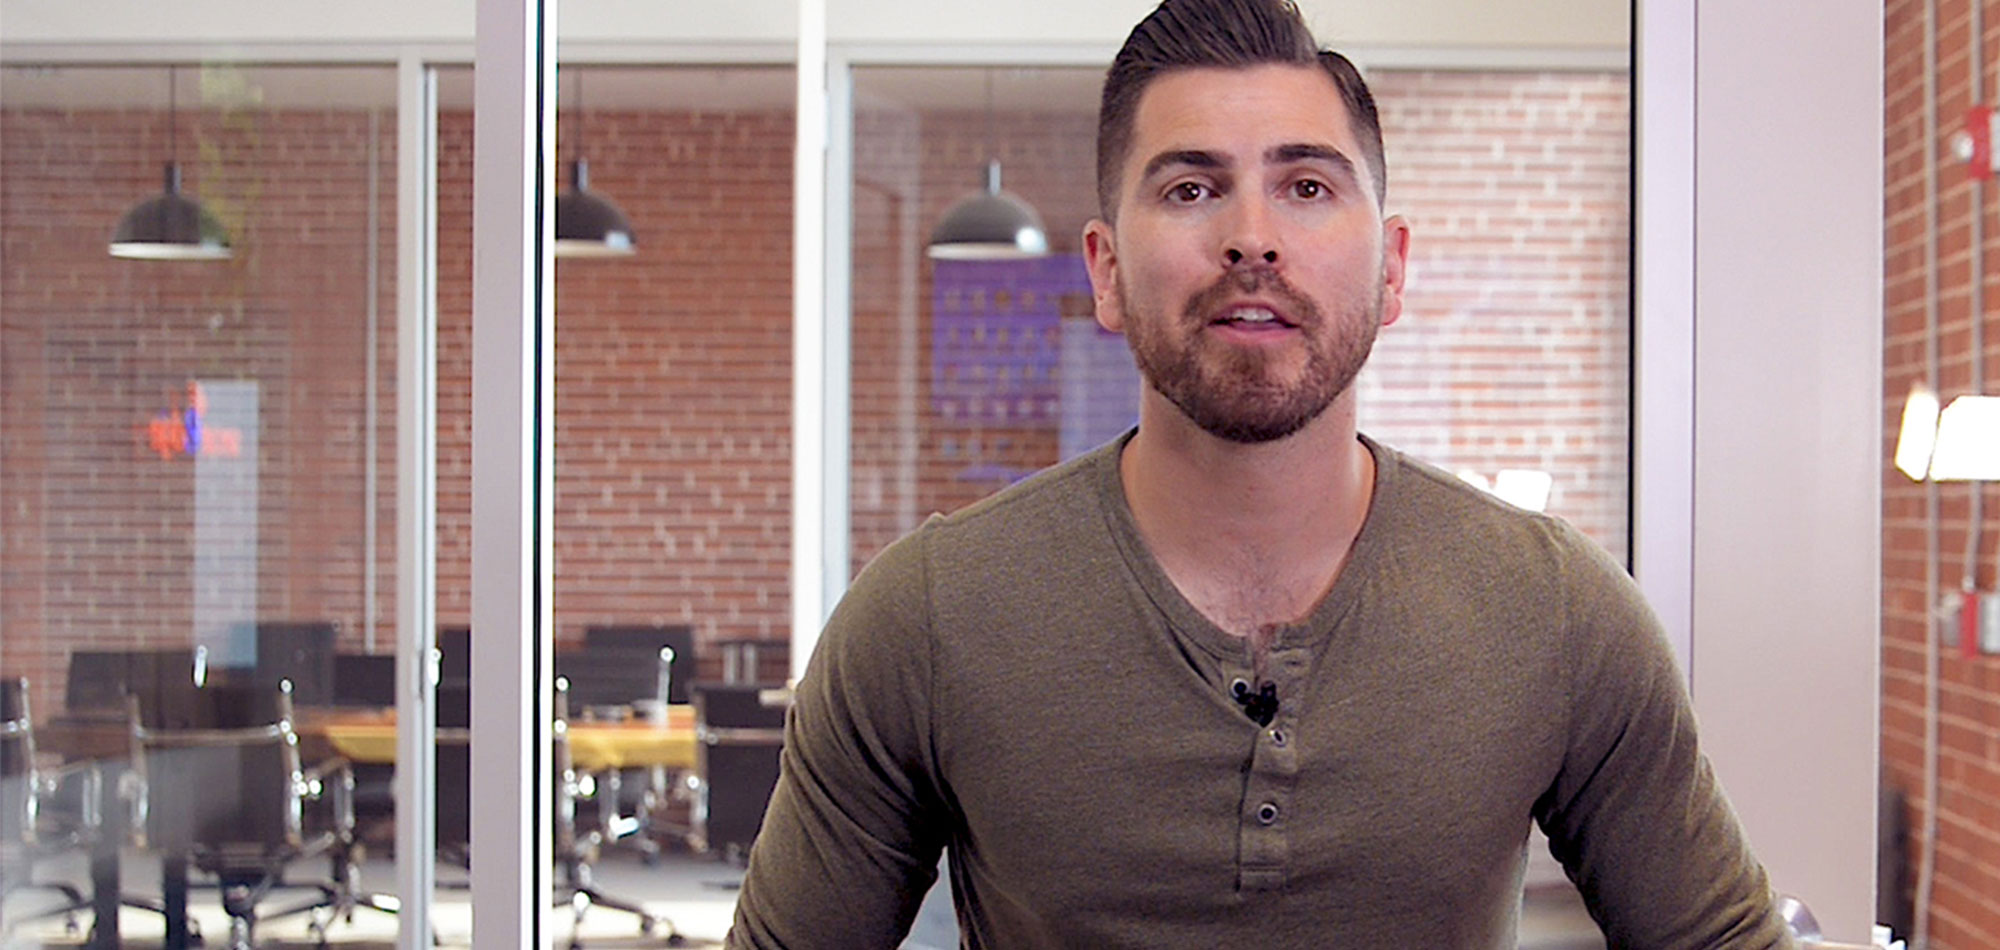 WiFi Minute: 2 Reasons Why You Should Consider a Managed WiFi System [Video]